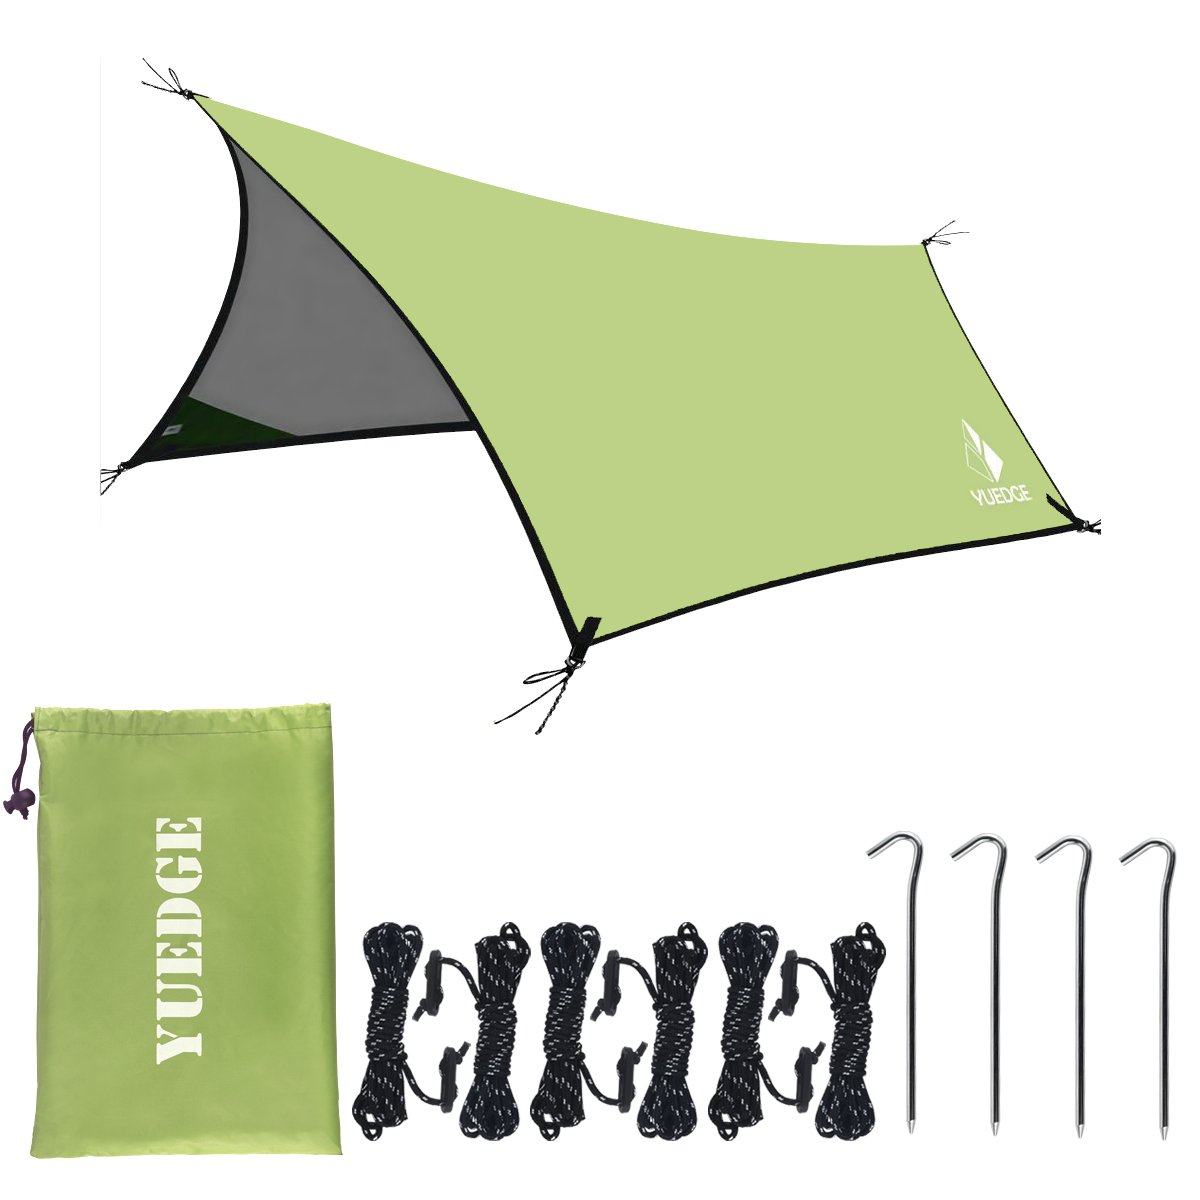 YUEDGE Waterproof Camping Tent Tarps Hammock Rain Fly Shelter Sunshade with Rope and Stakes, Army Green, 10' x 13'